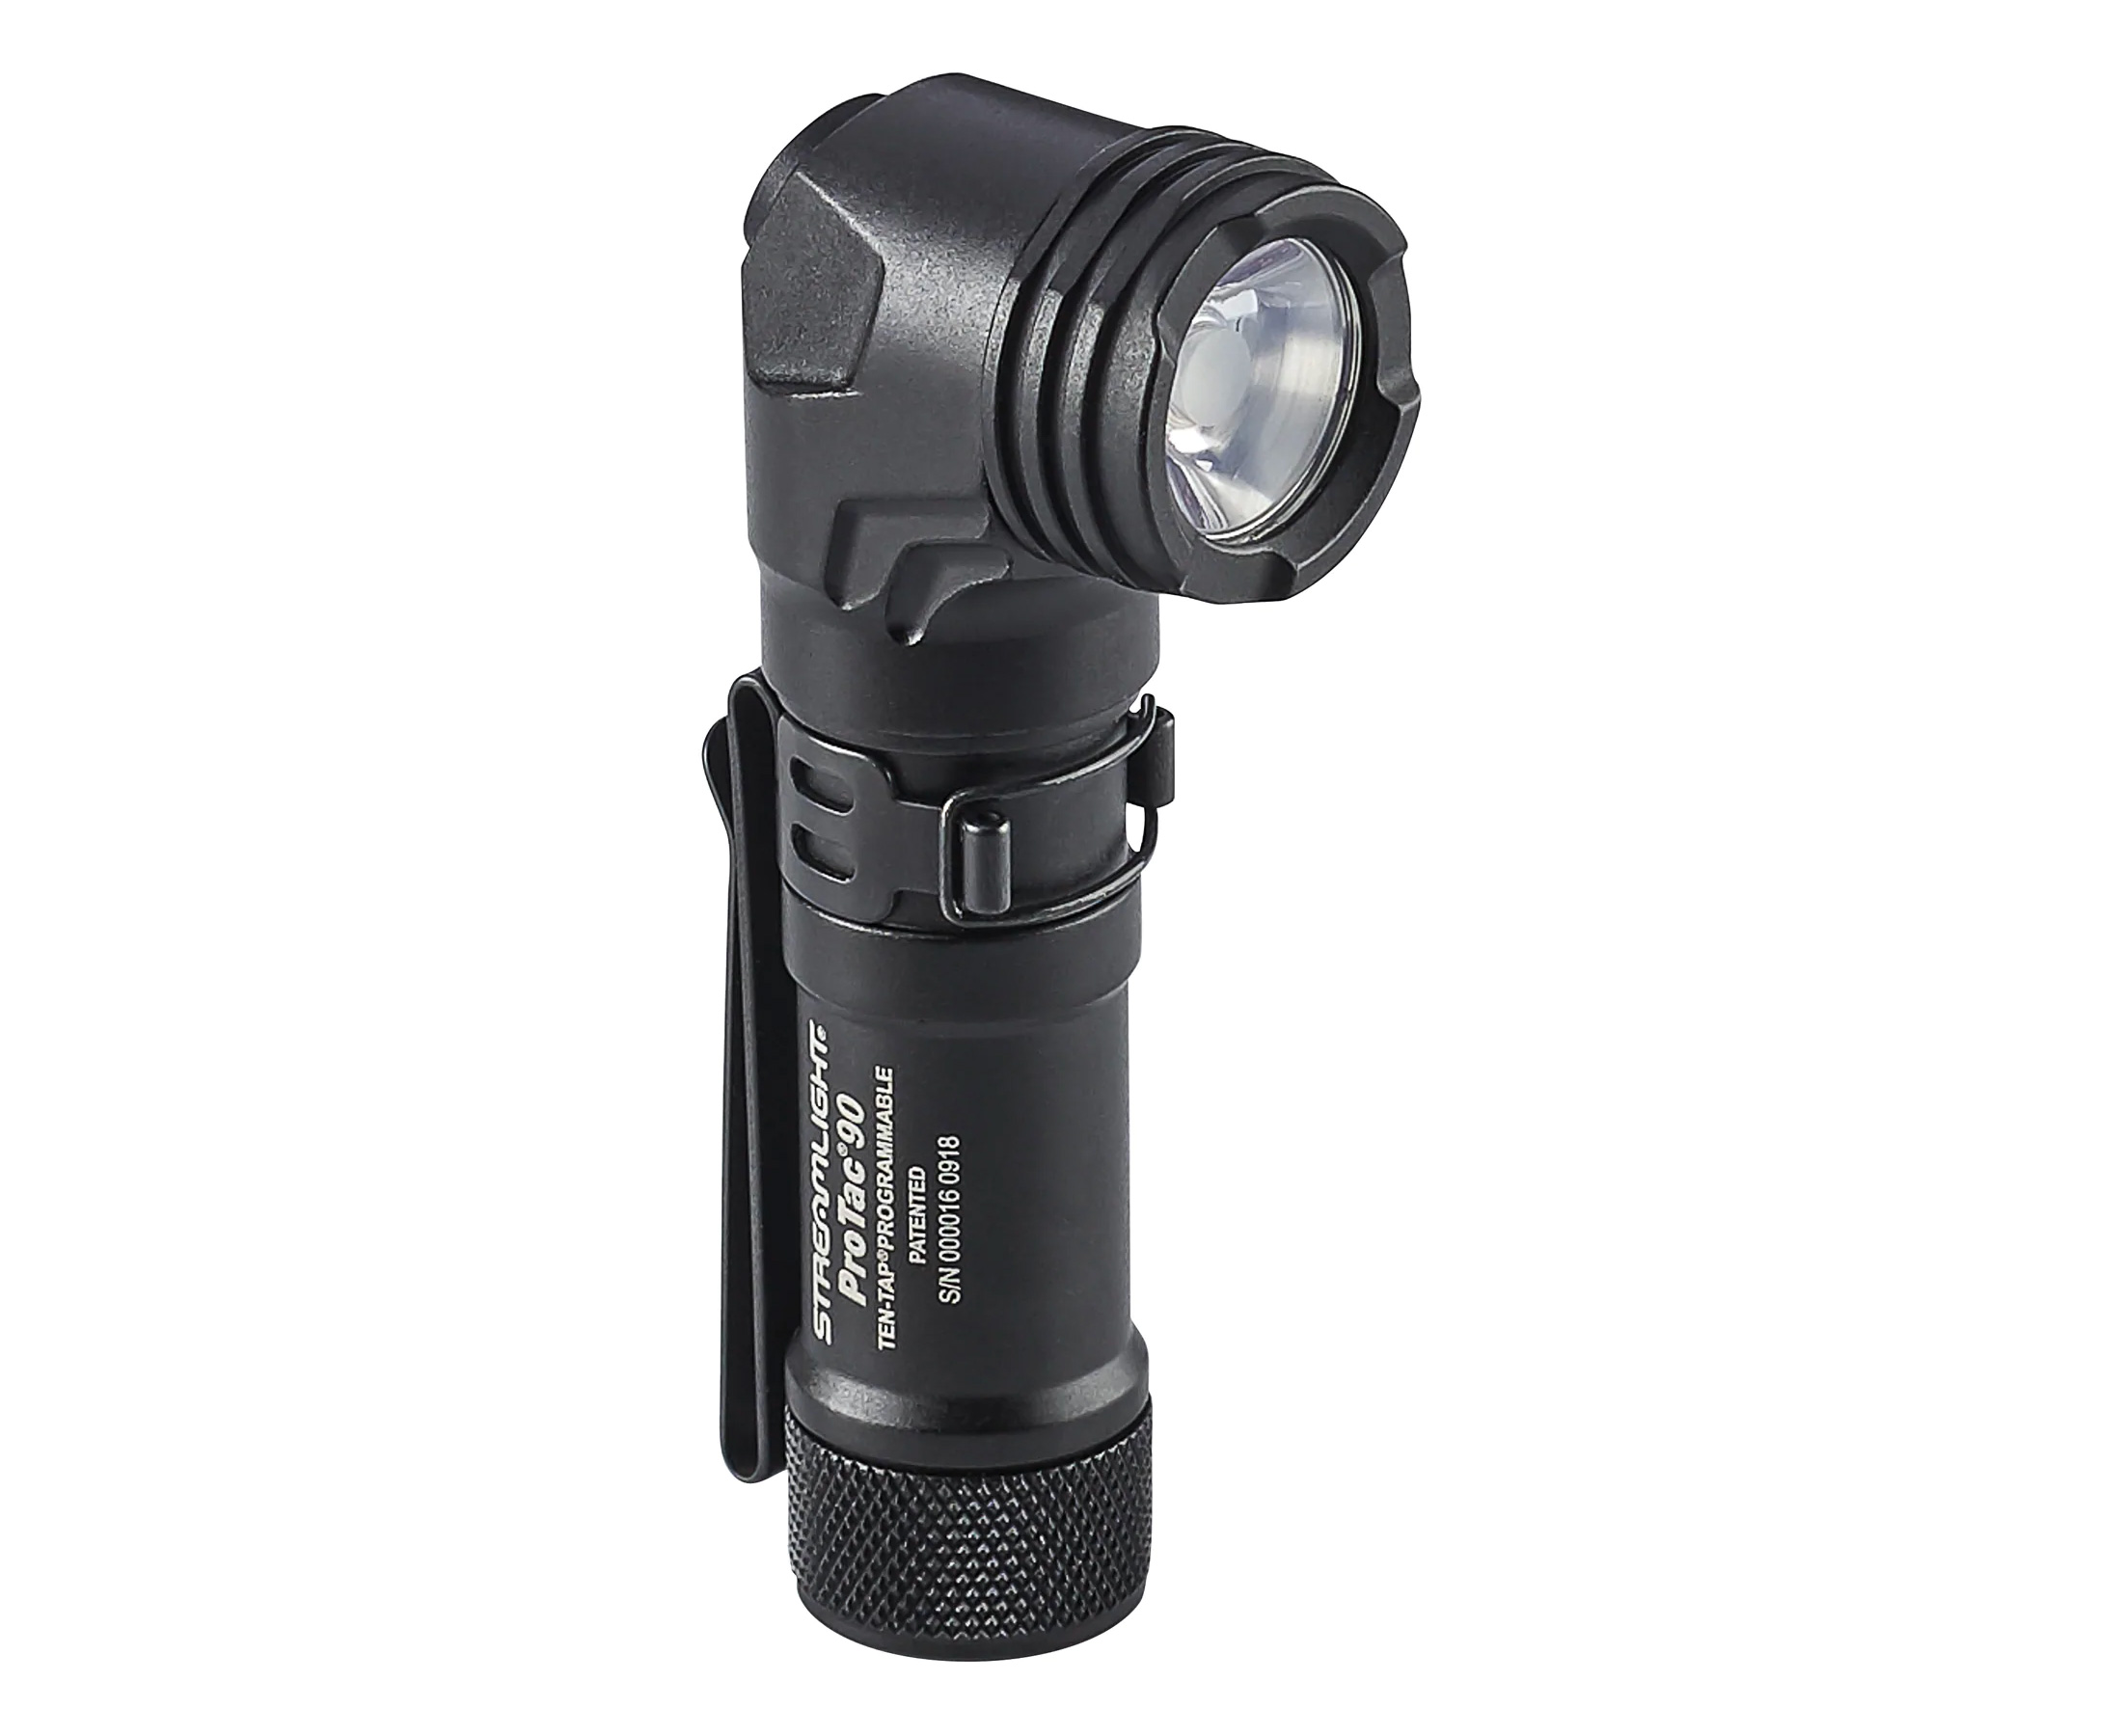 The ProTac 90 EC Flashlight Takes a Fresh Angle at werd.com